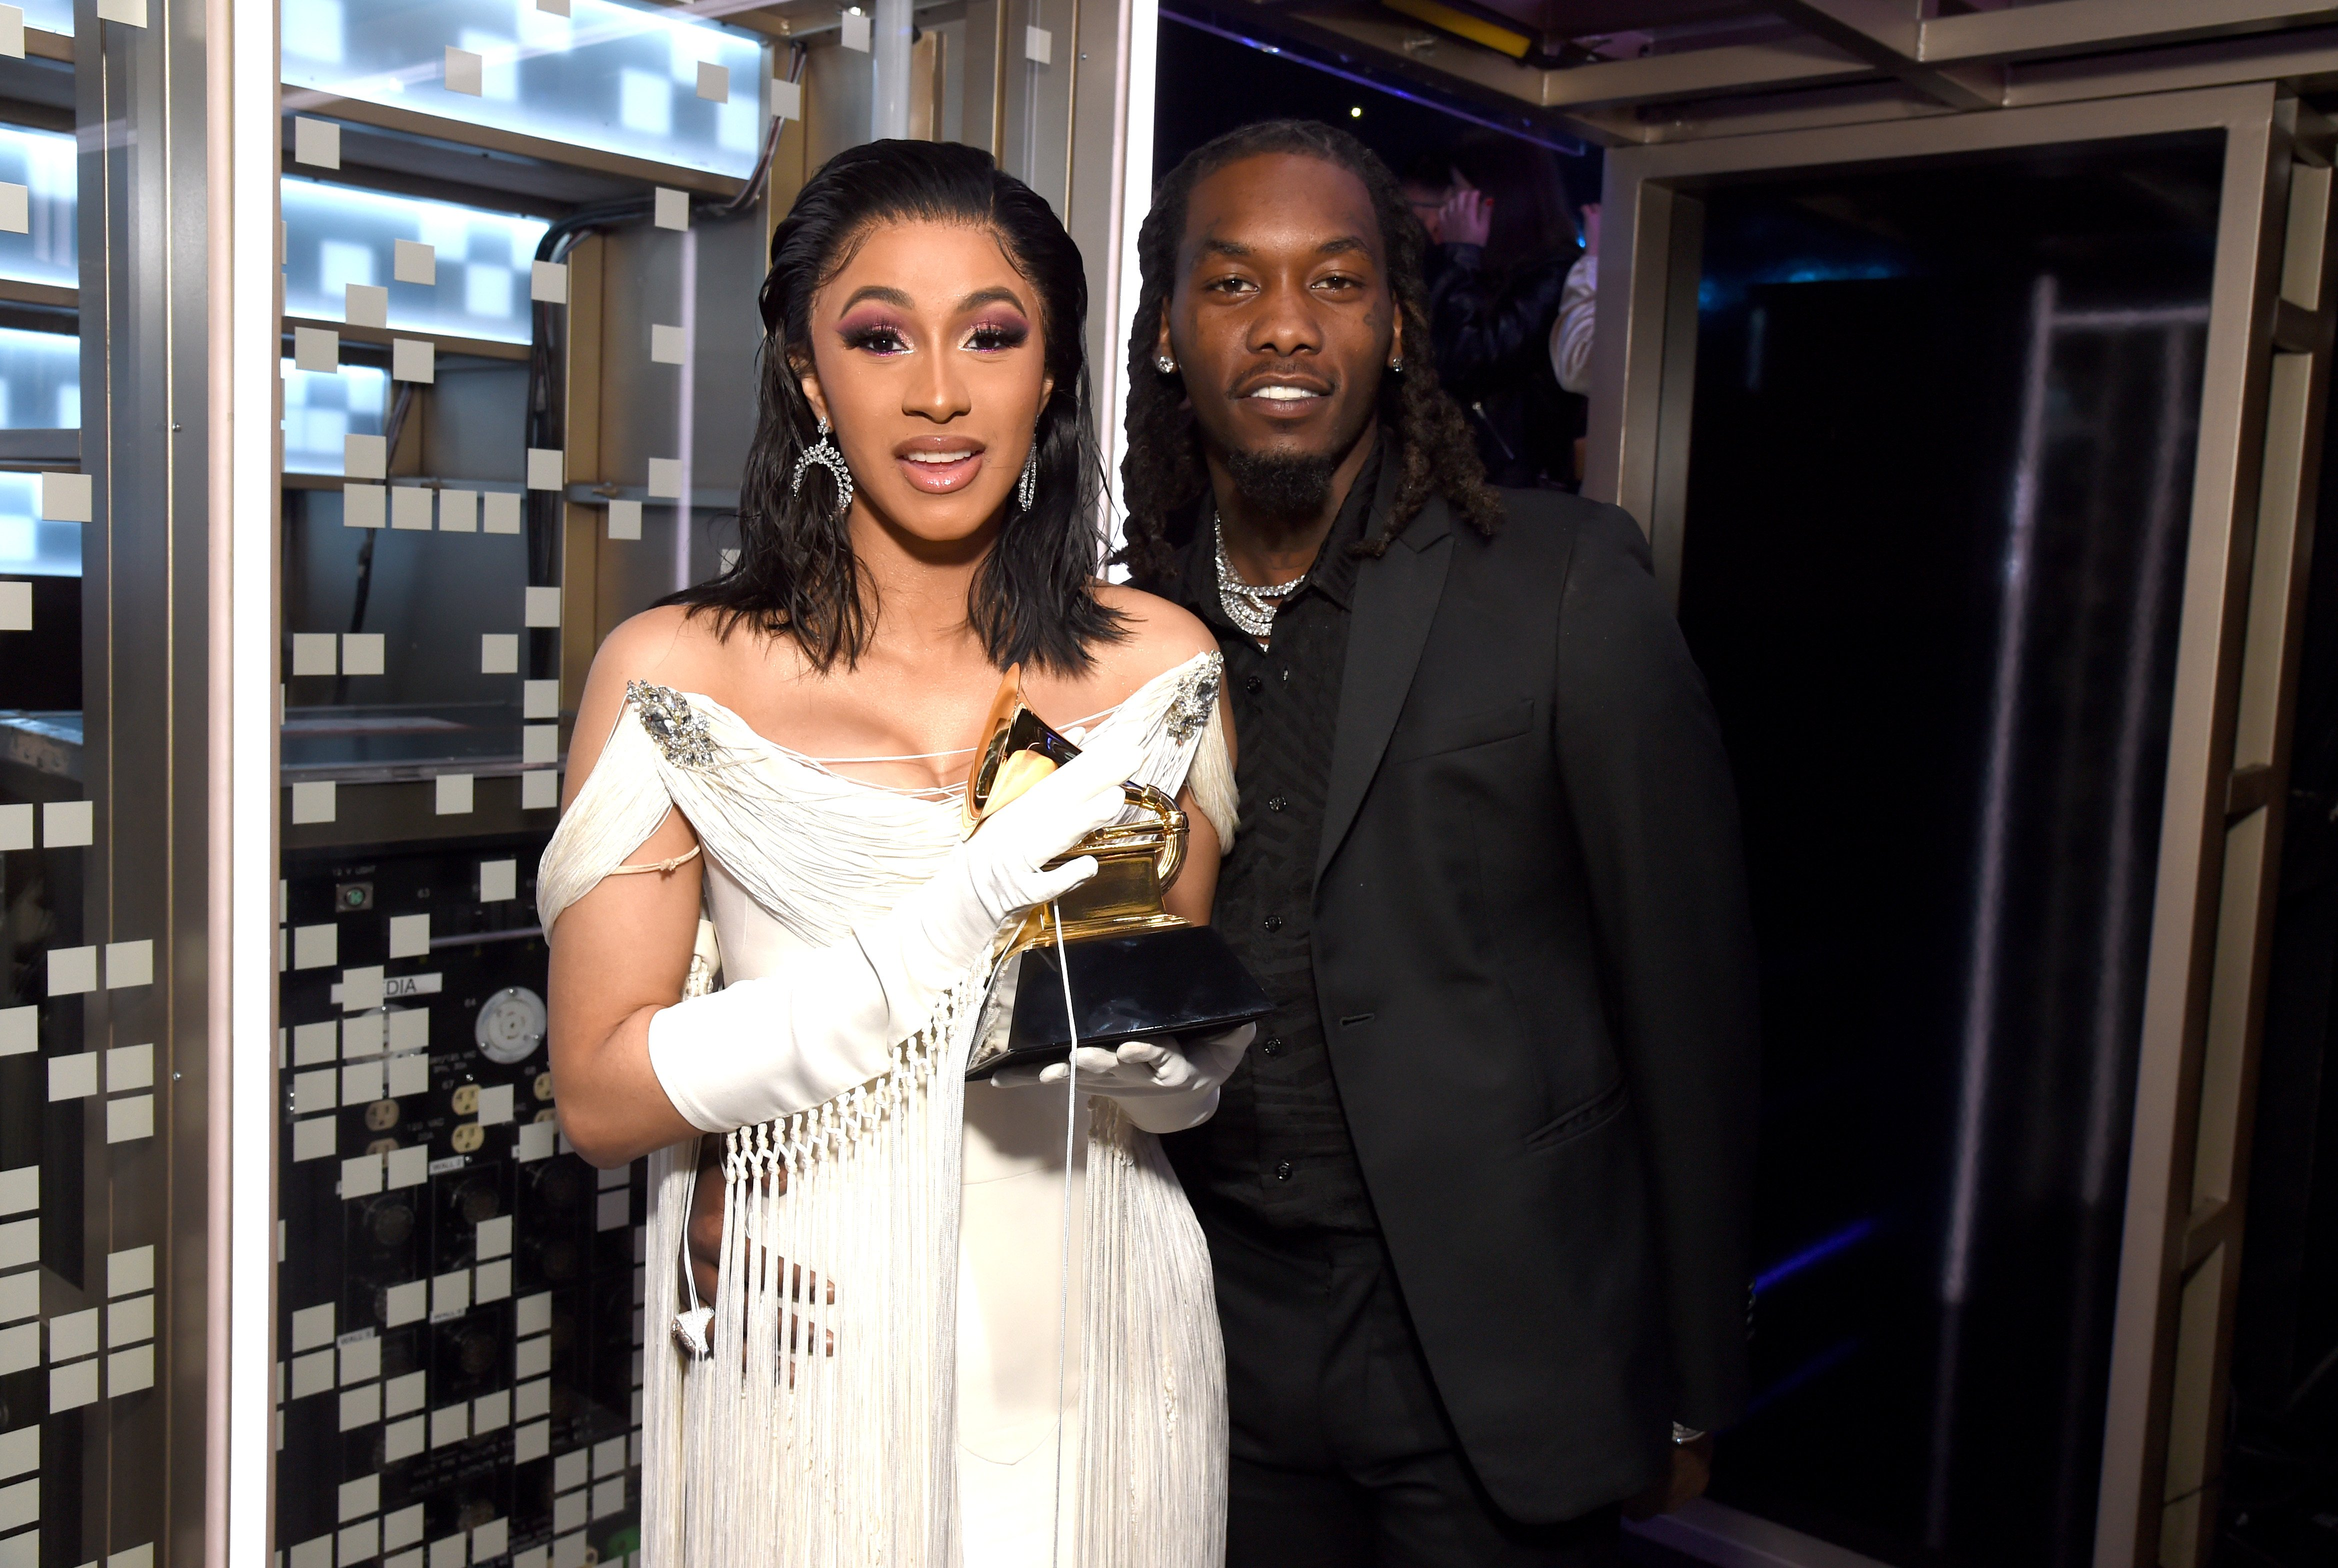 Cardi B and Offset pose backstage at the 61st Annual Grammy Awards, 2019 in Los Angeles, California | Source: Getty Images